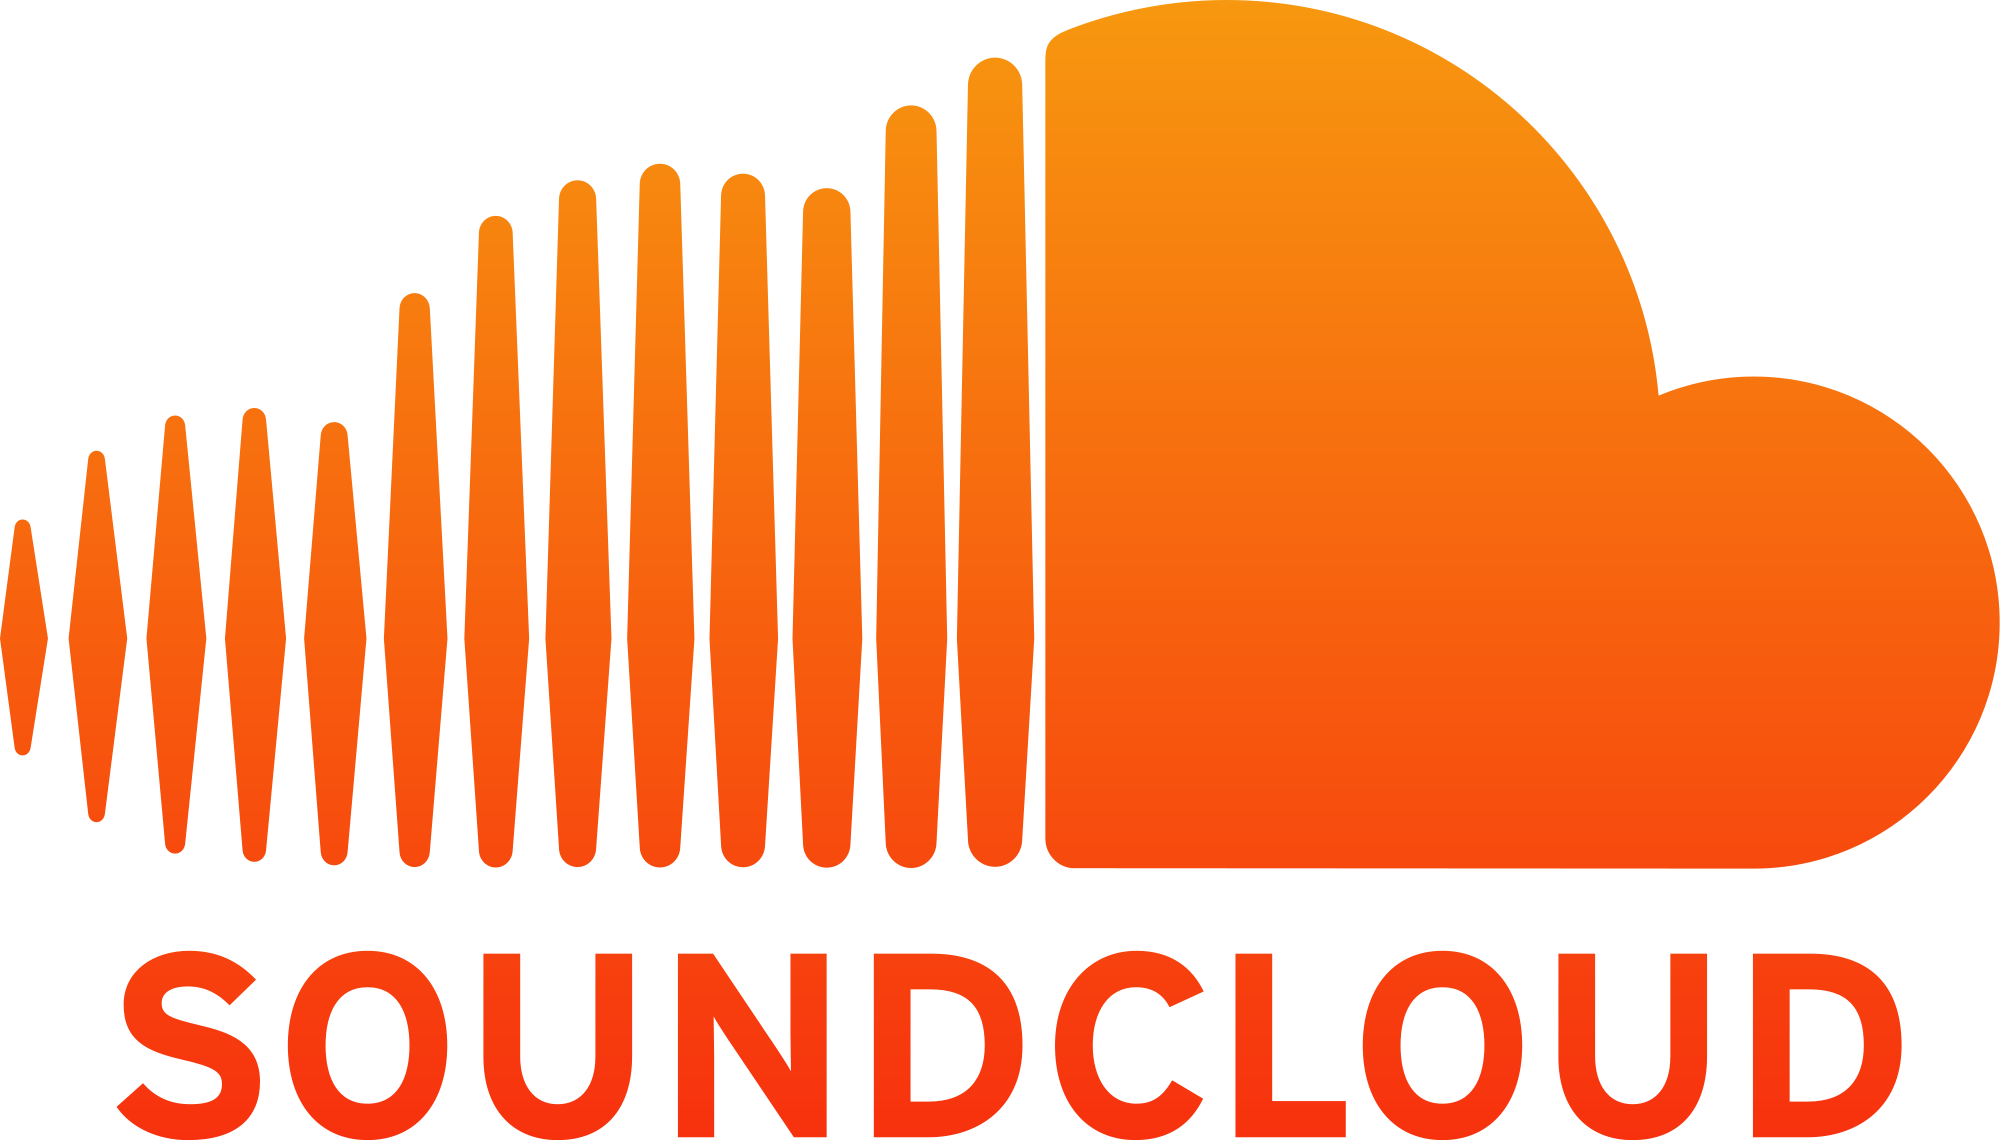 https://upload.wikimedia.org/wikipedia/fr/b/bb/SoundCloud_logo.png